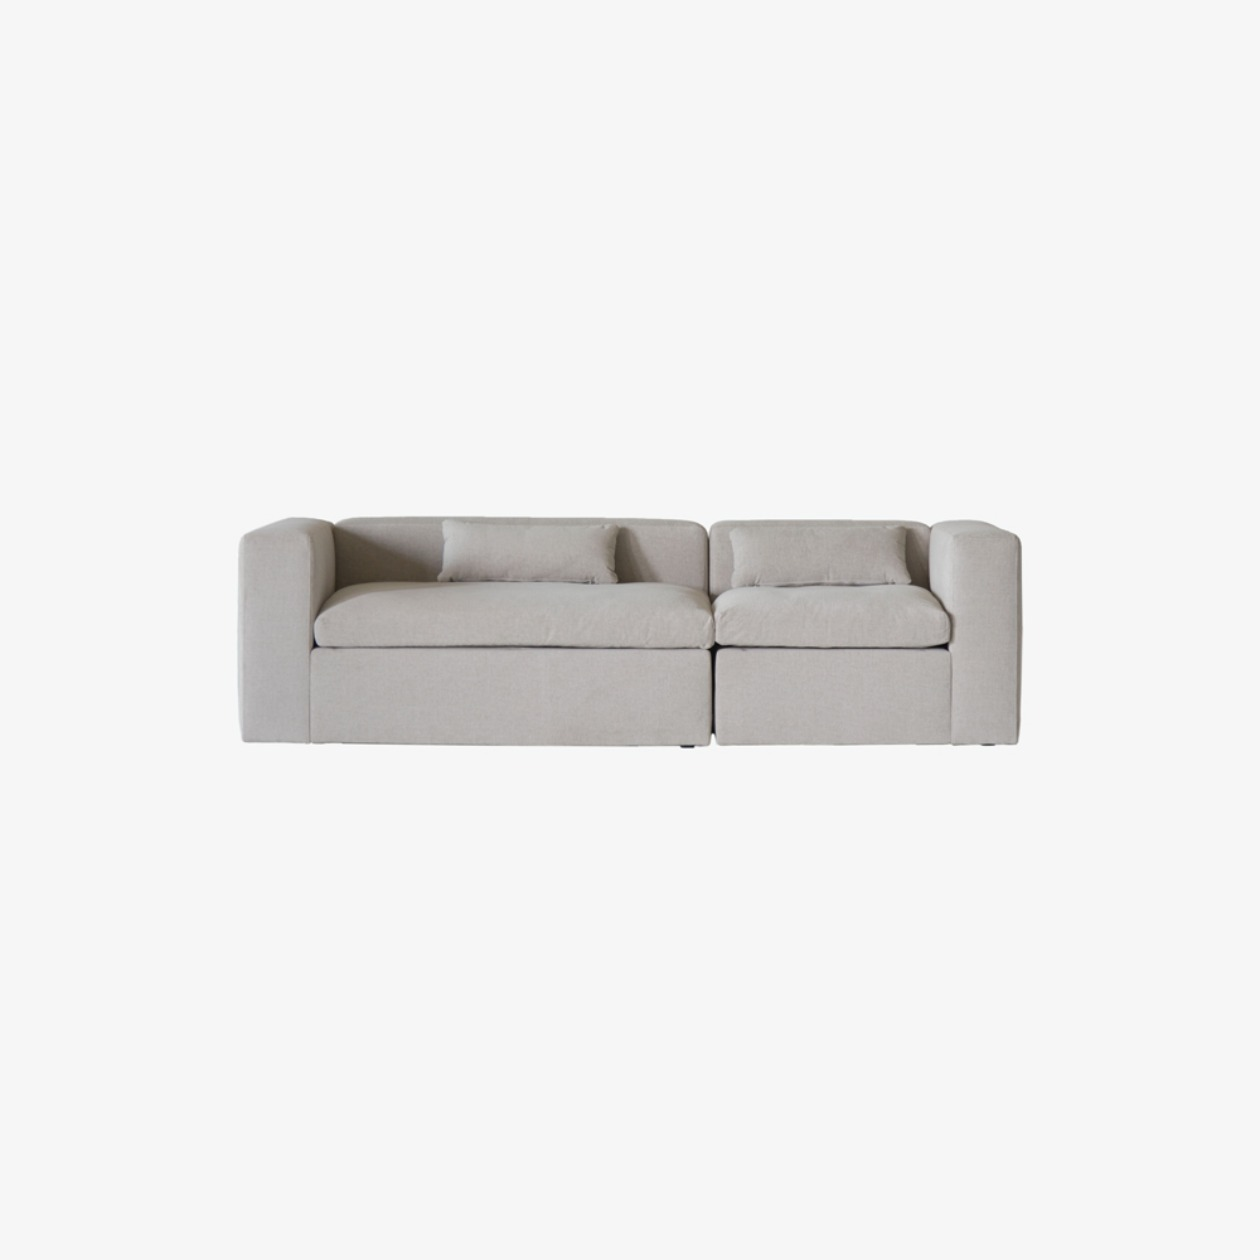 TIMELESS SOFT SOFA A+D